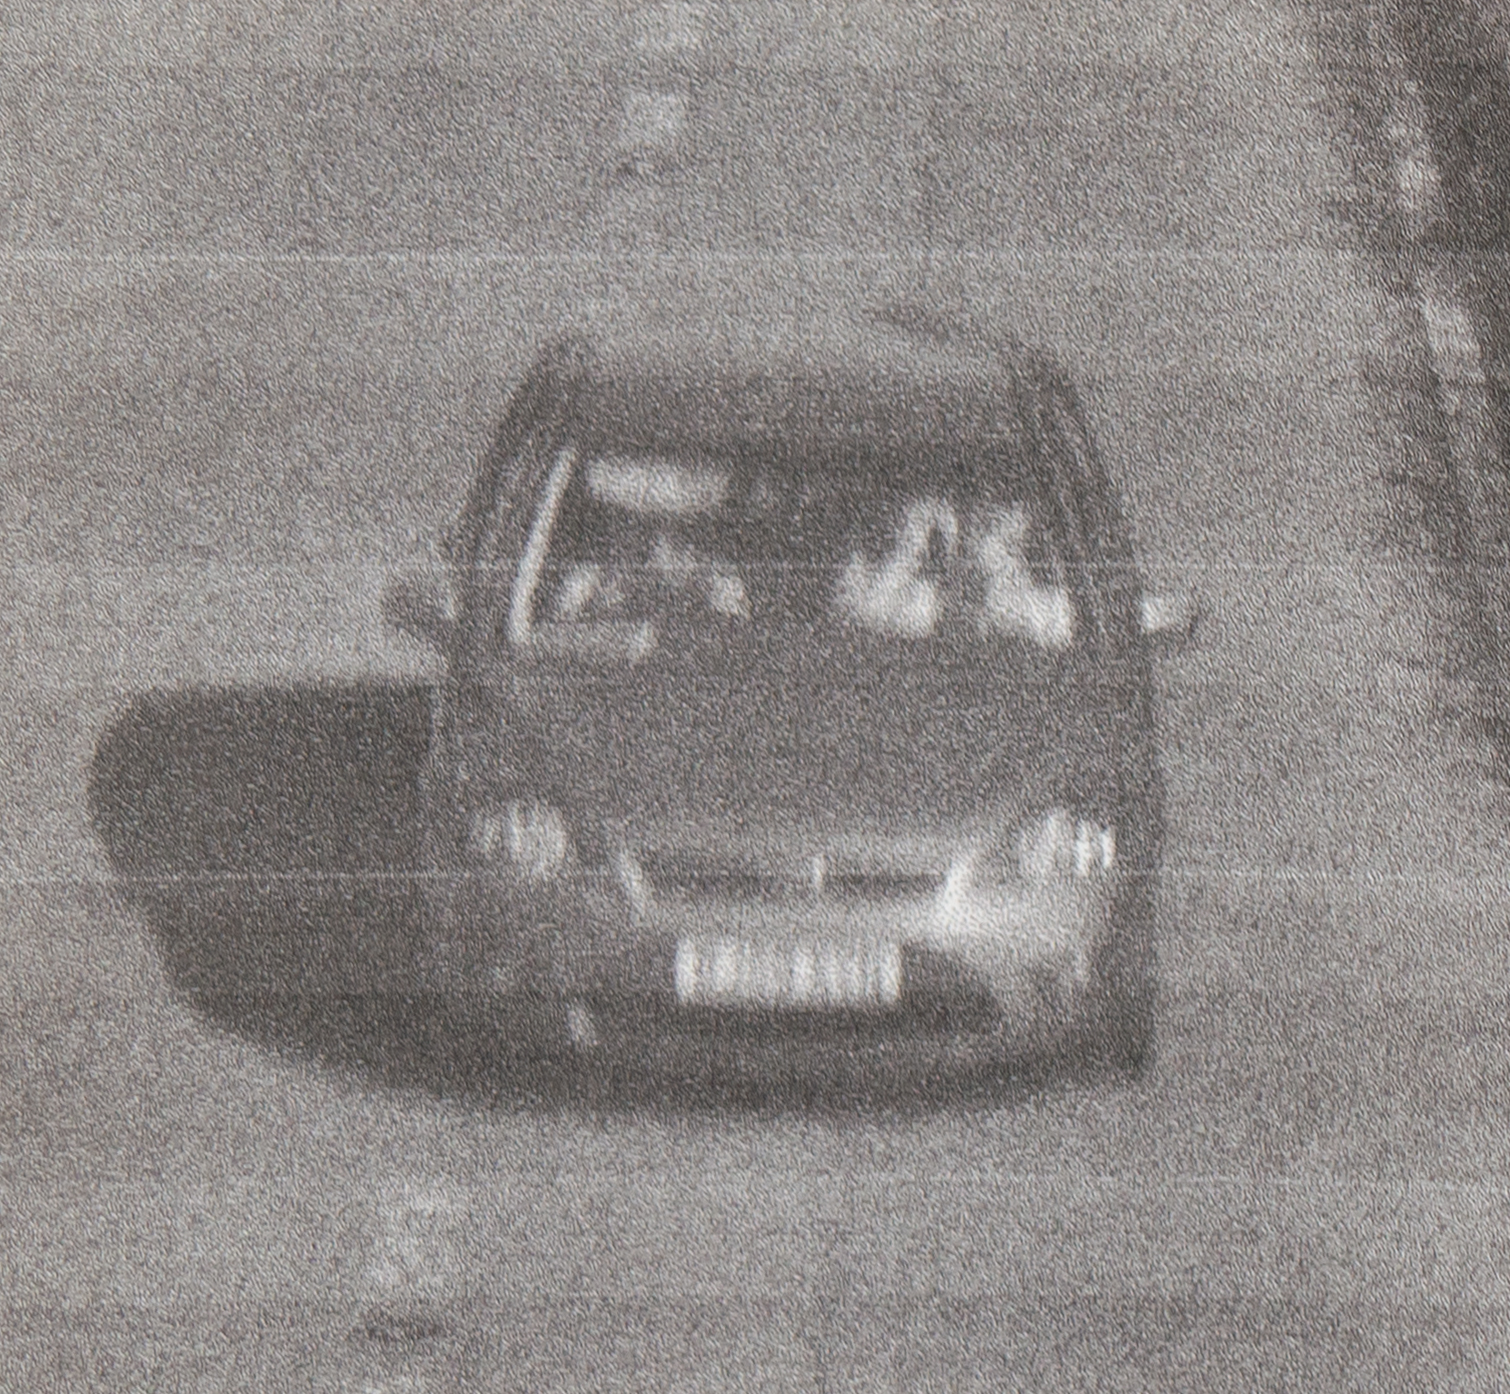 Car on bypass road.